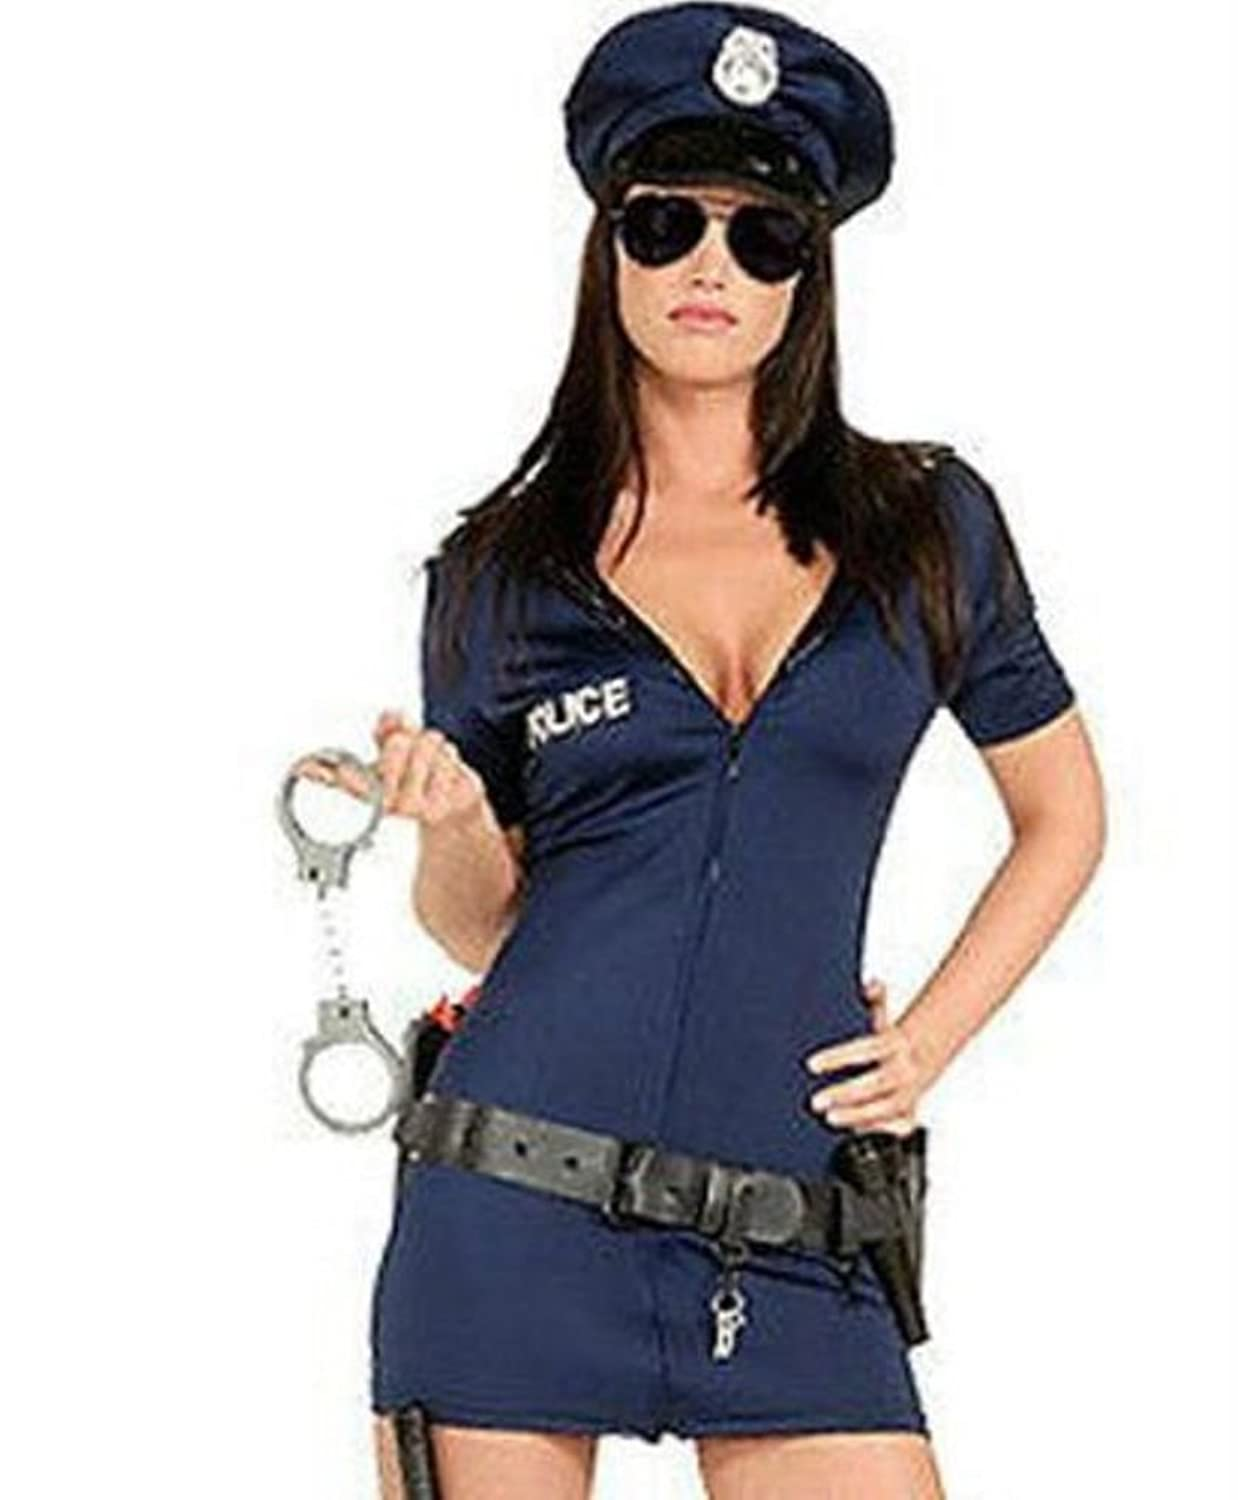 Dress up xl games - Ladies Sexy Police Officer Cop Uniform Adult Fancy Dress Costume Halloween Hen Party Outfit With Belt